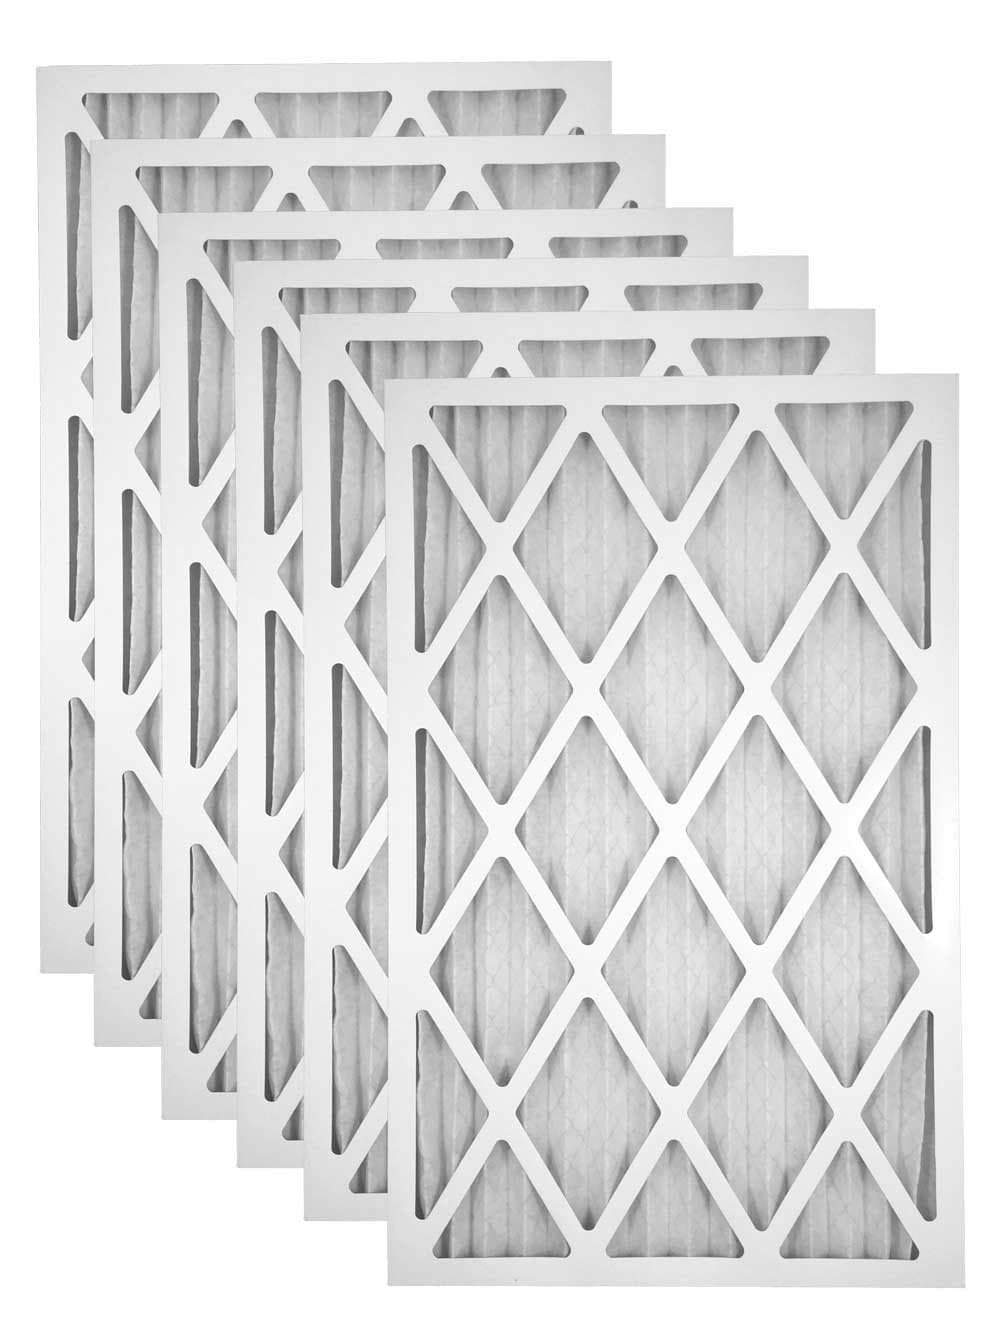 12x24x1 Merv 8 AC Furnace Filter - Case of 6